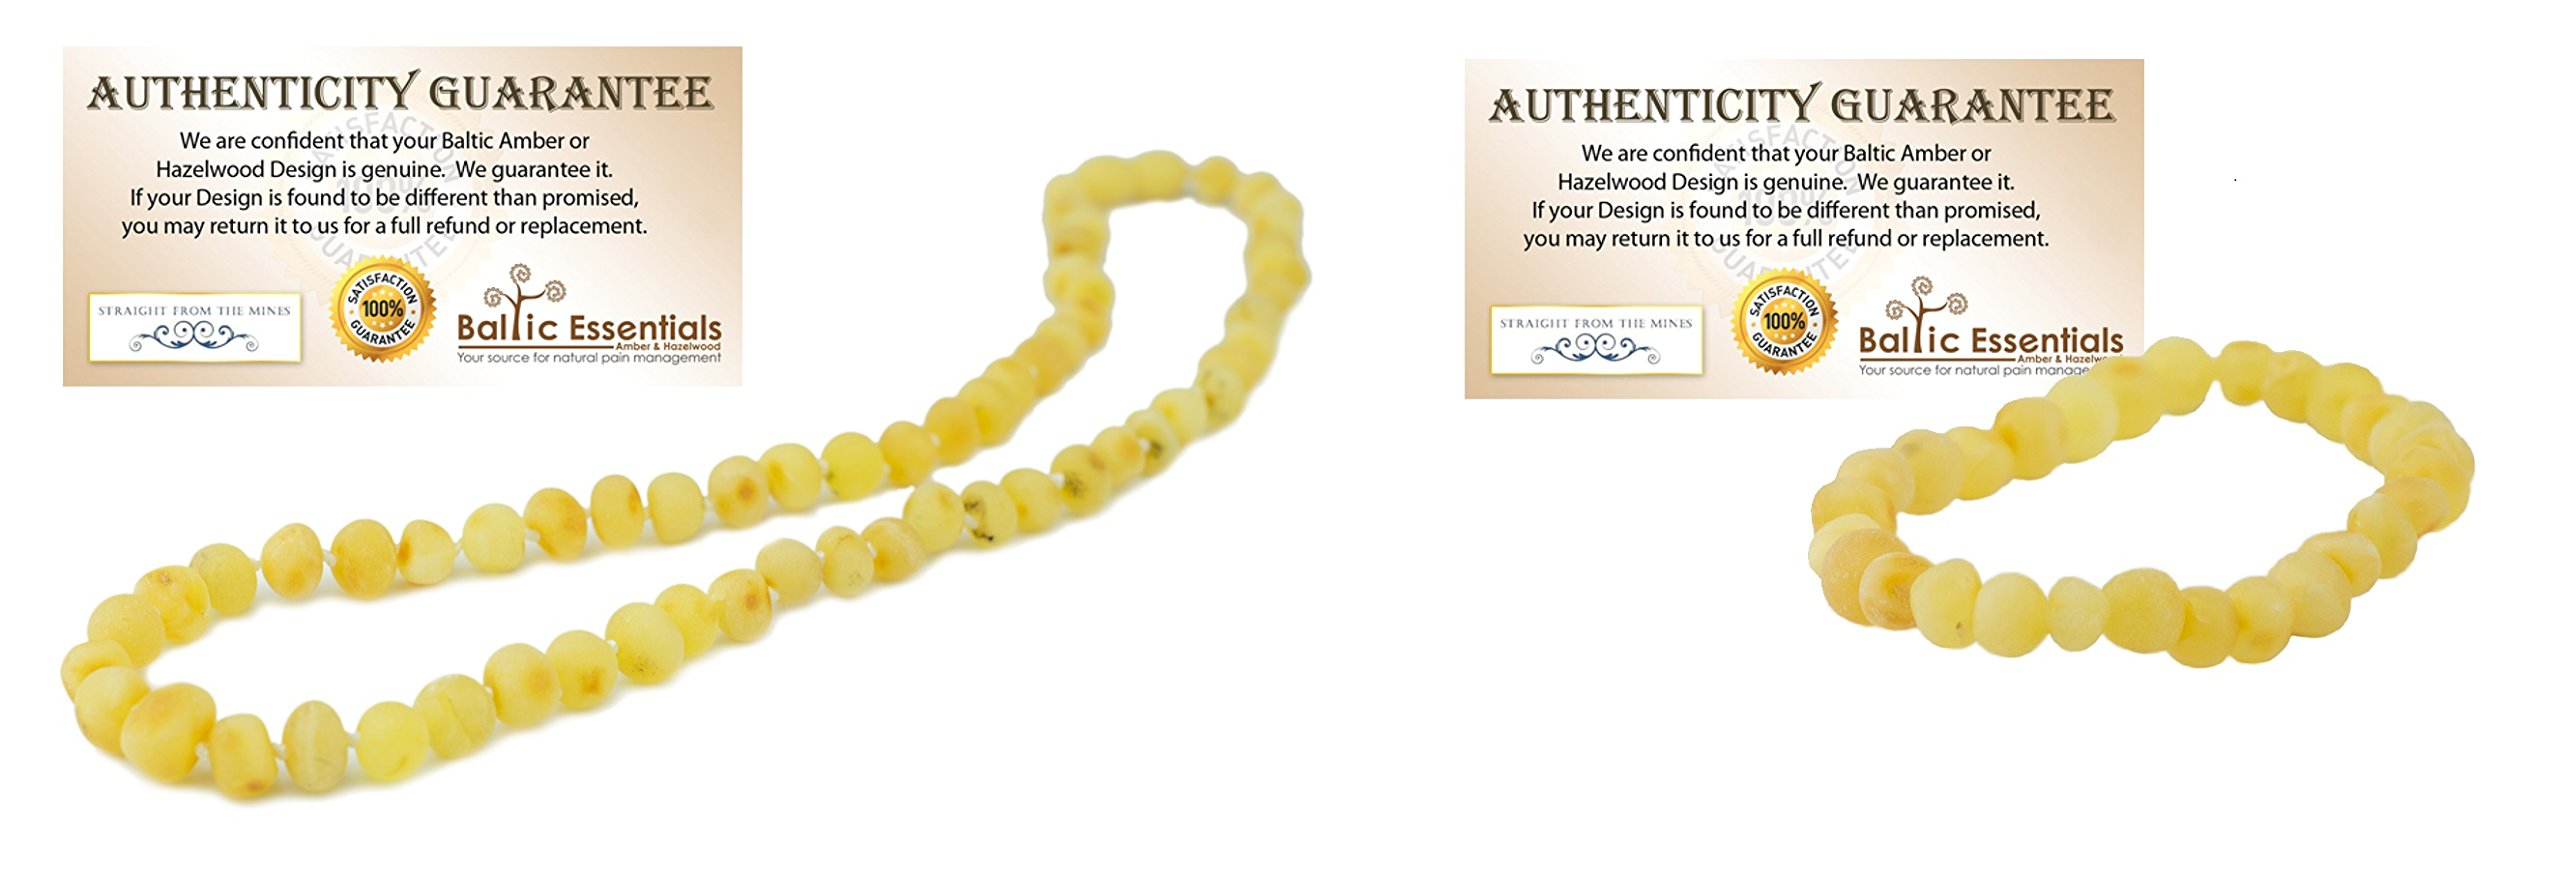 Baltic Essentials 11 Inch Raw Lemon Amber Necklace, Screw clasp Teething Necklace for Infant, Baby Drooling & Teething, Growing pains, Reduce Properties -Natural Certified (Necklace-Bracelet-SET)